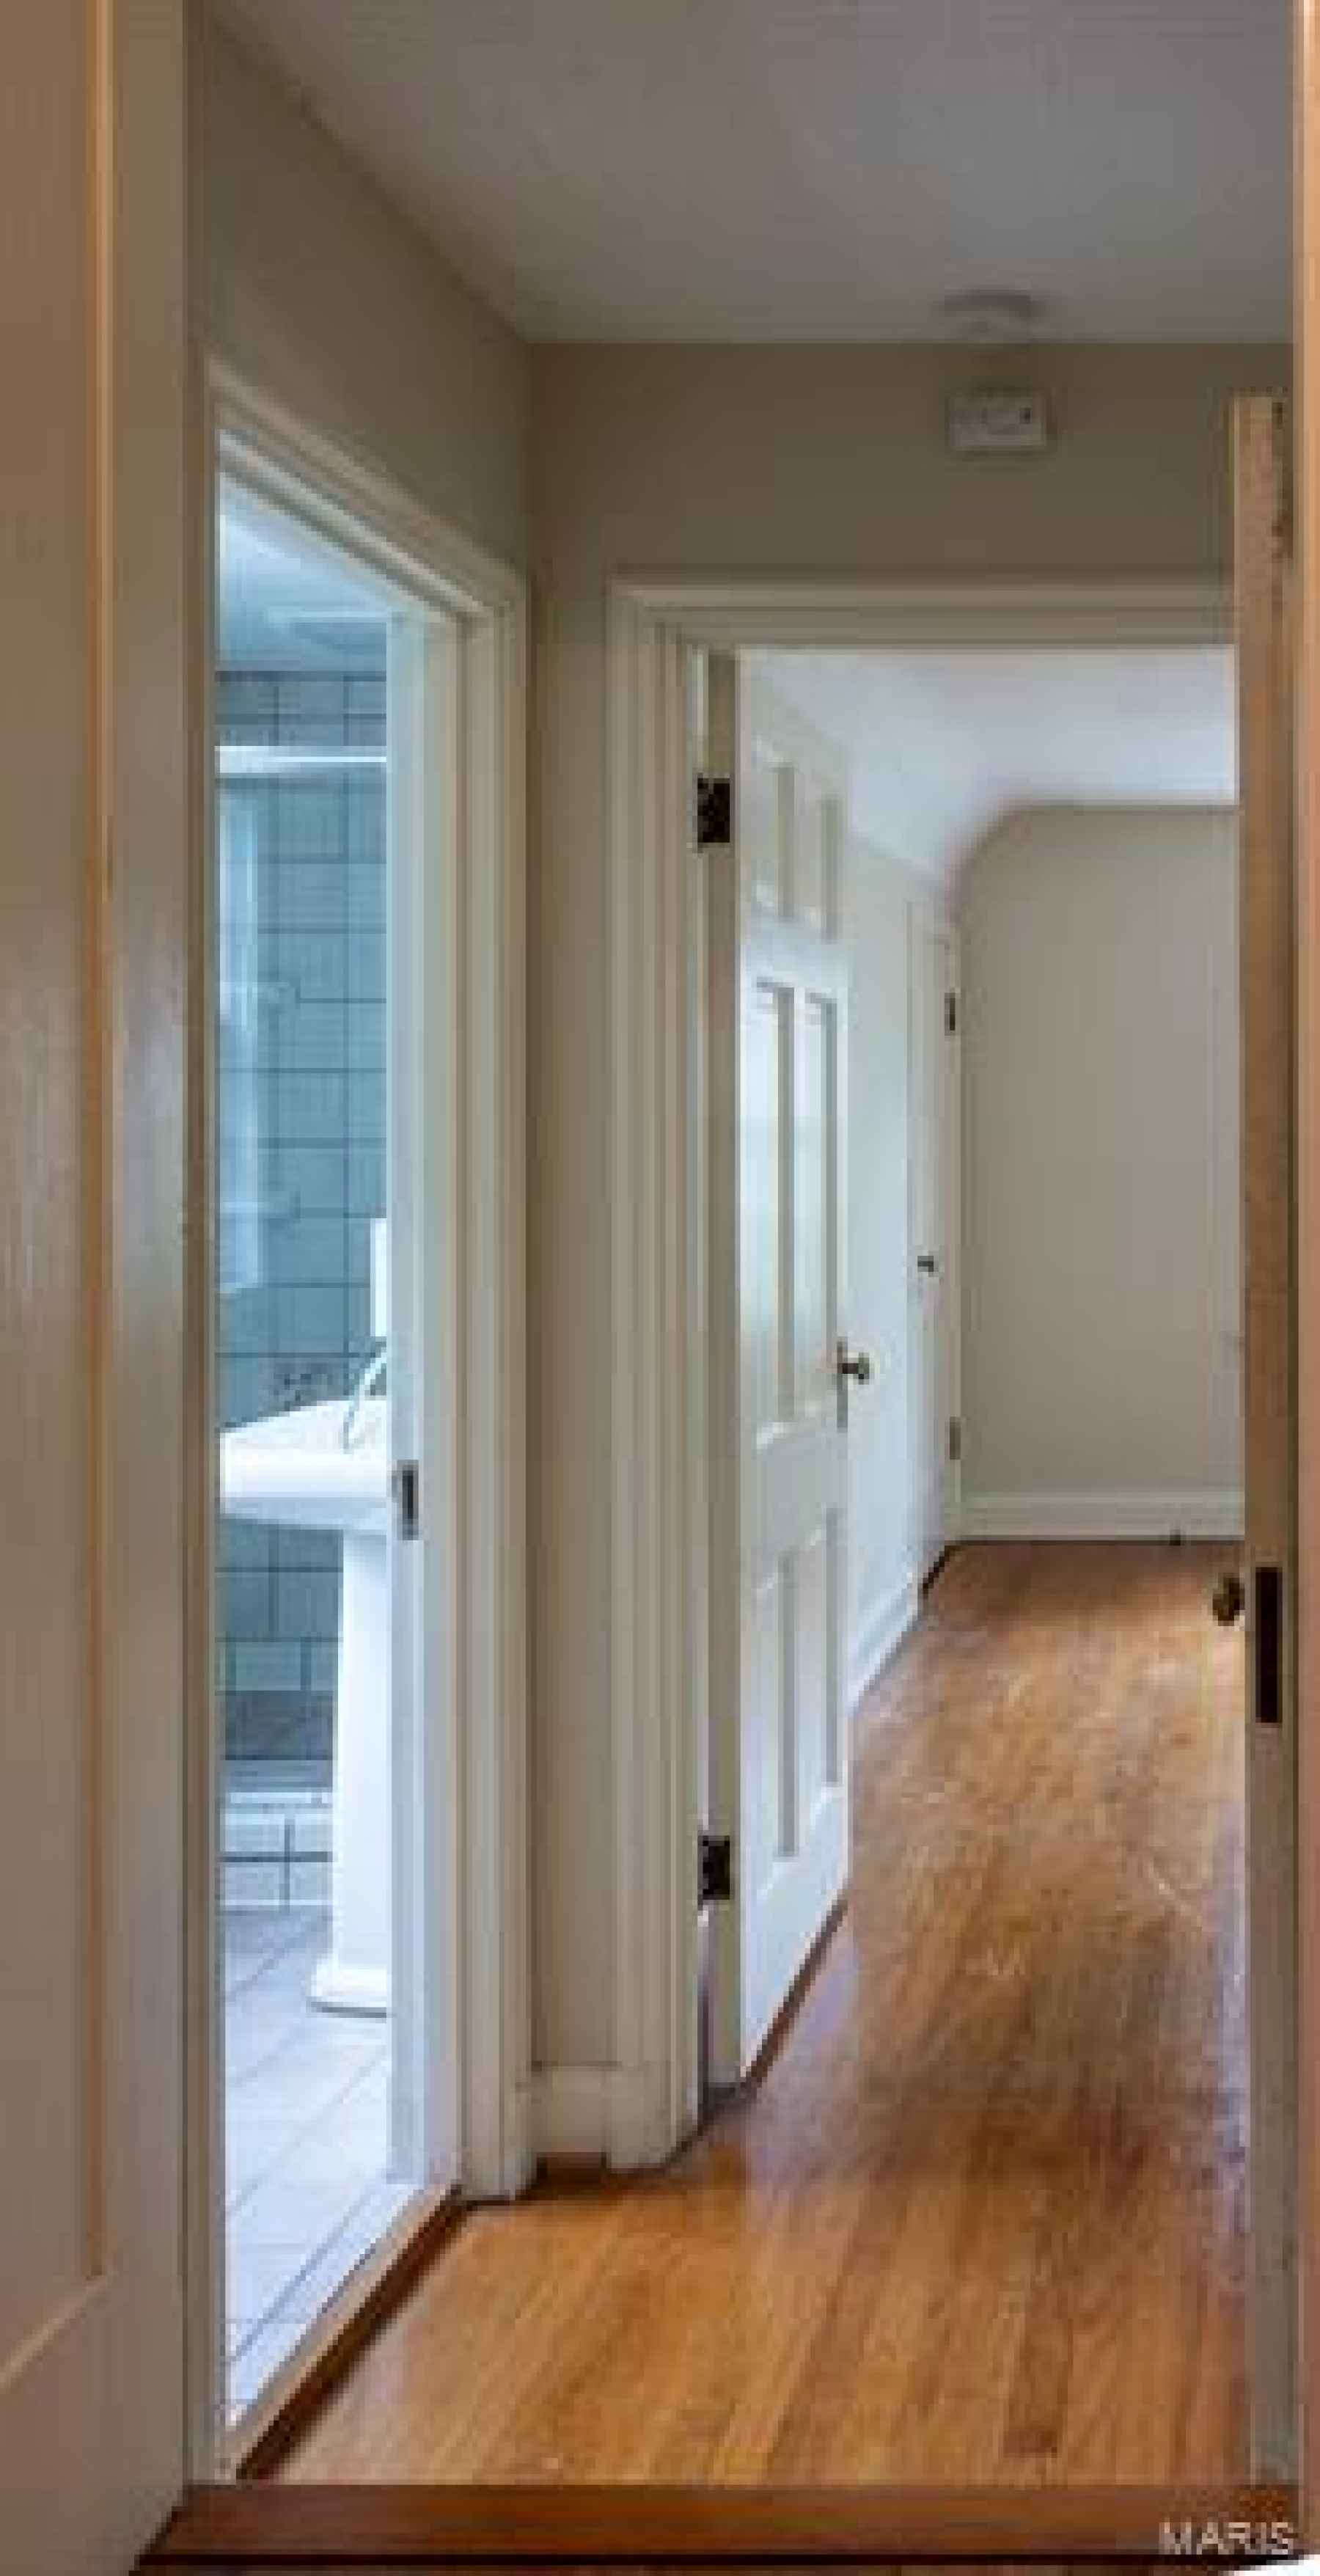 Upper Landing - Step Down to a Bedroom, Full Bath, and Cedar Lined Closet